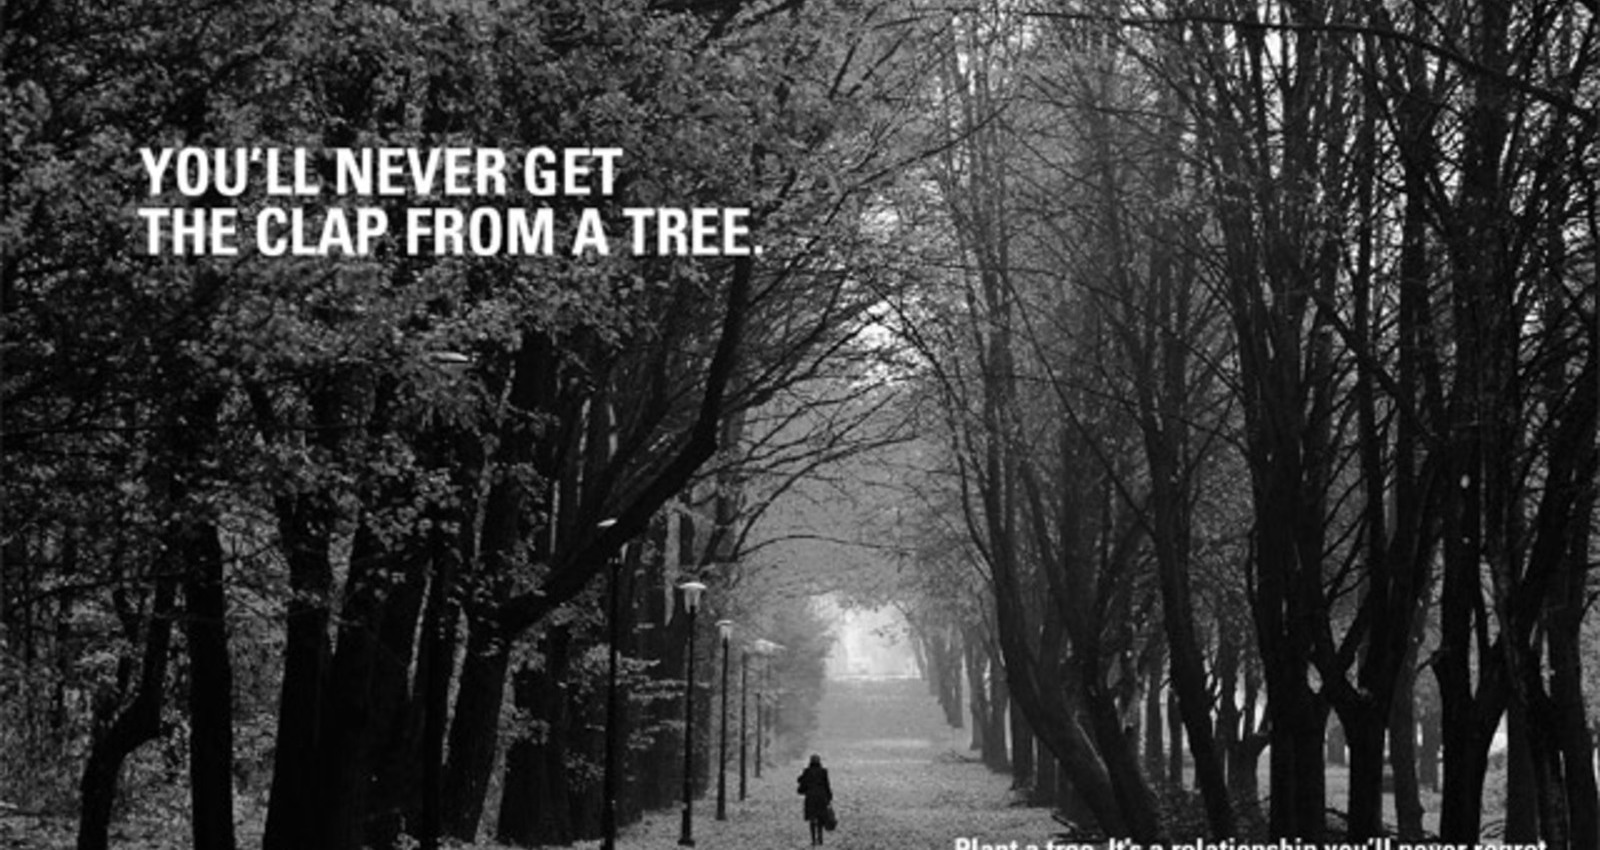 Get involved with a tree